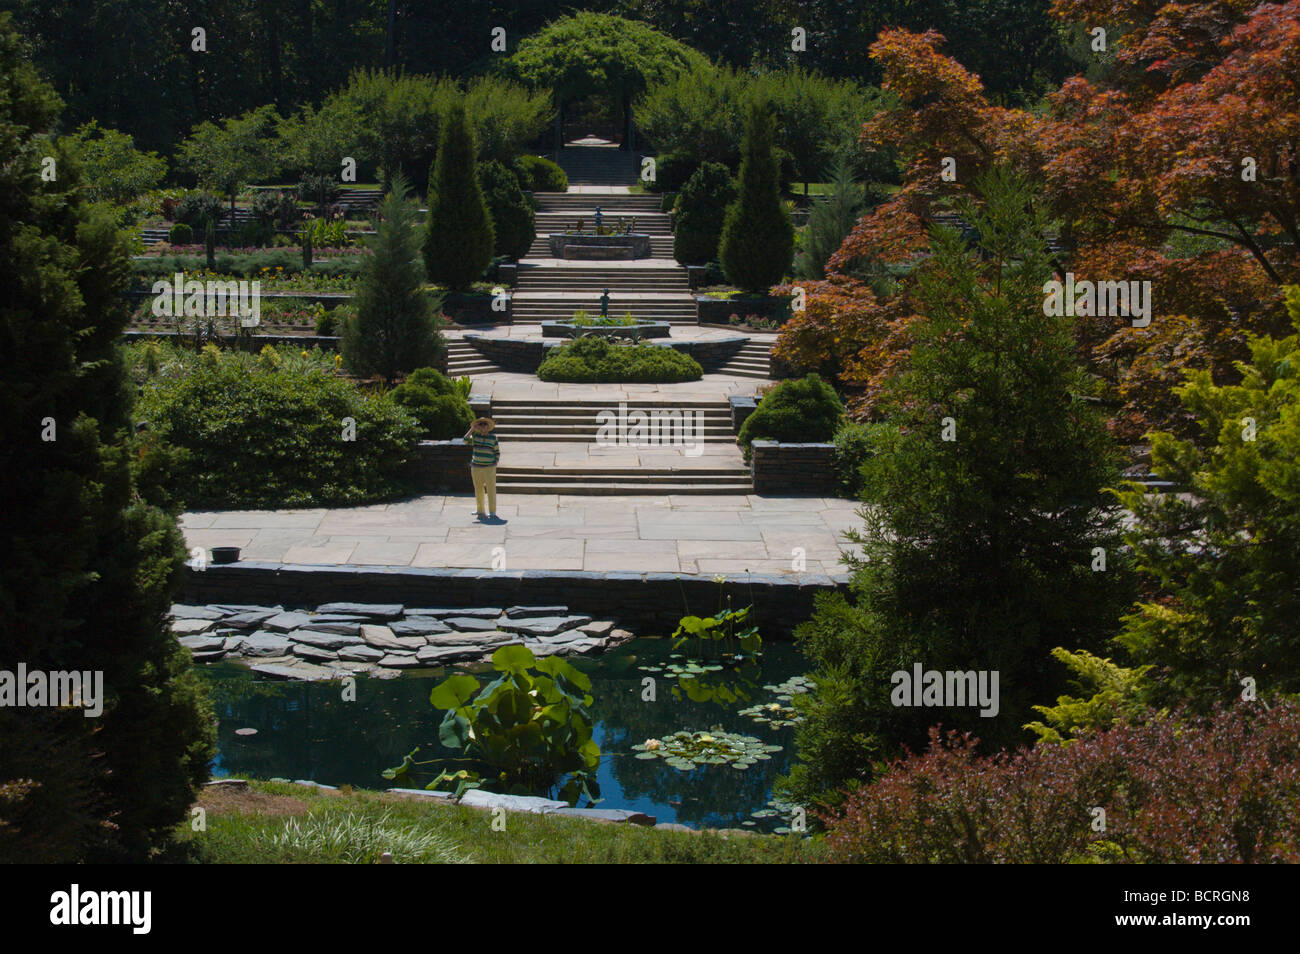 View of main gardens at Sarah P. Duke Gardens, Durham, North Carolina, USA - Stock Image